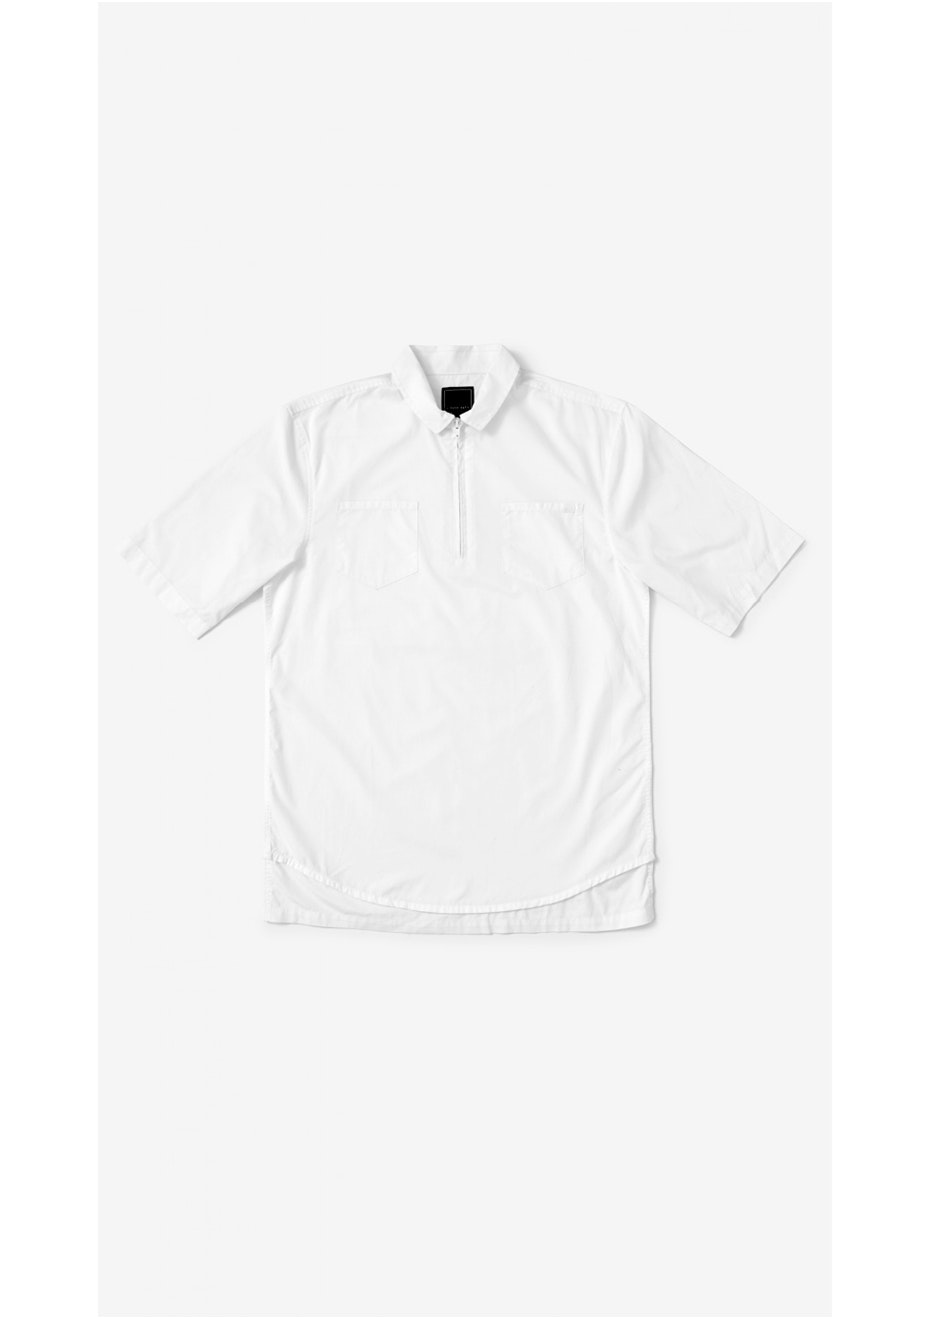 I Love Ugly - SS Zip Shirt - White